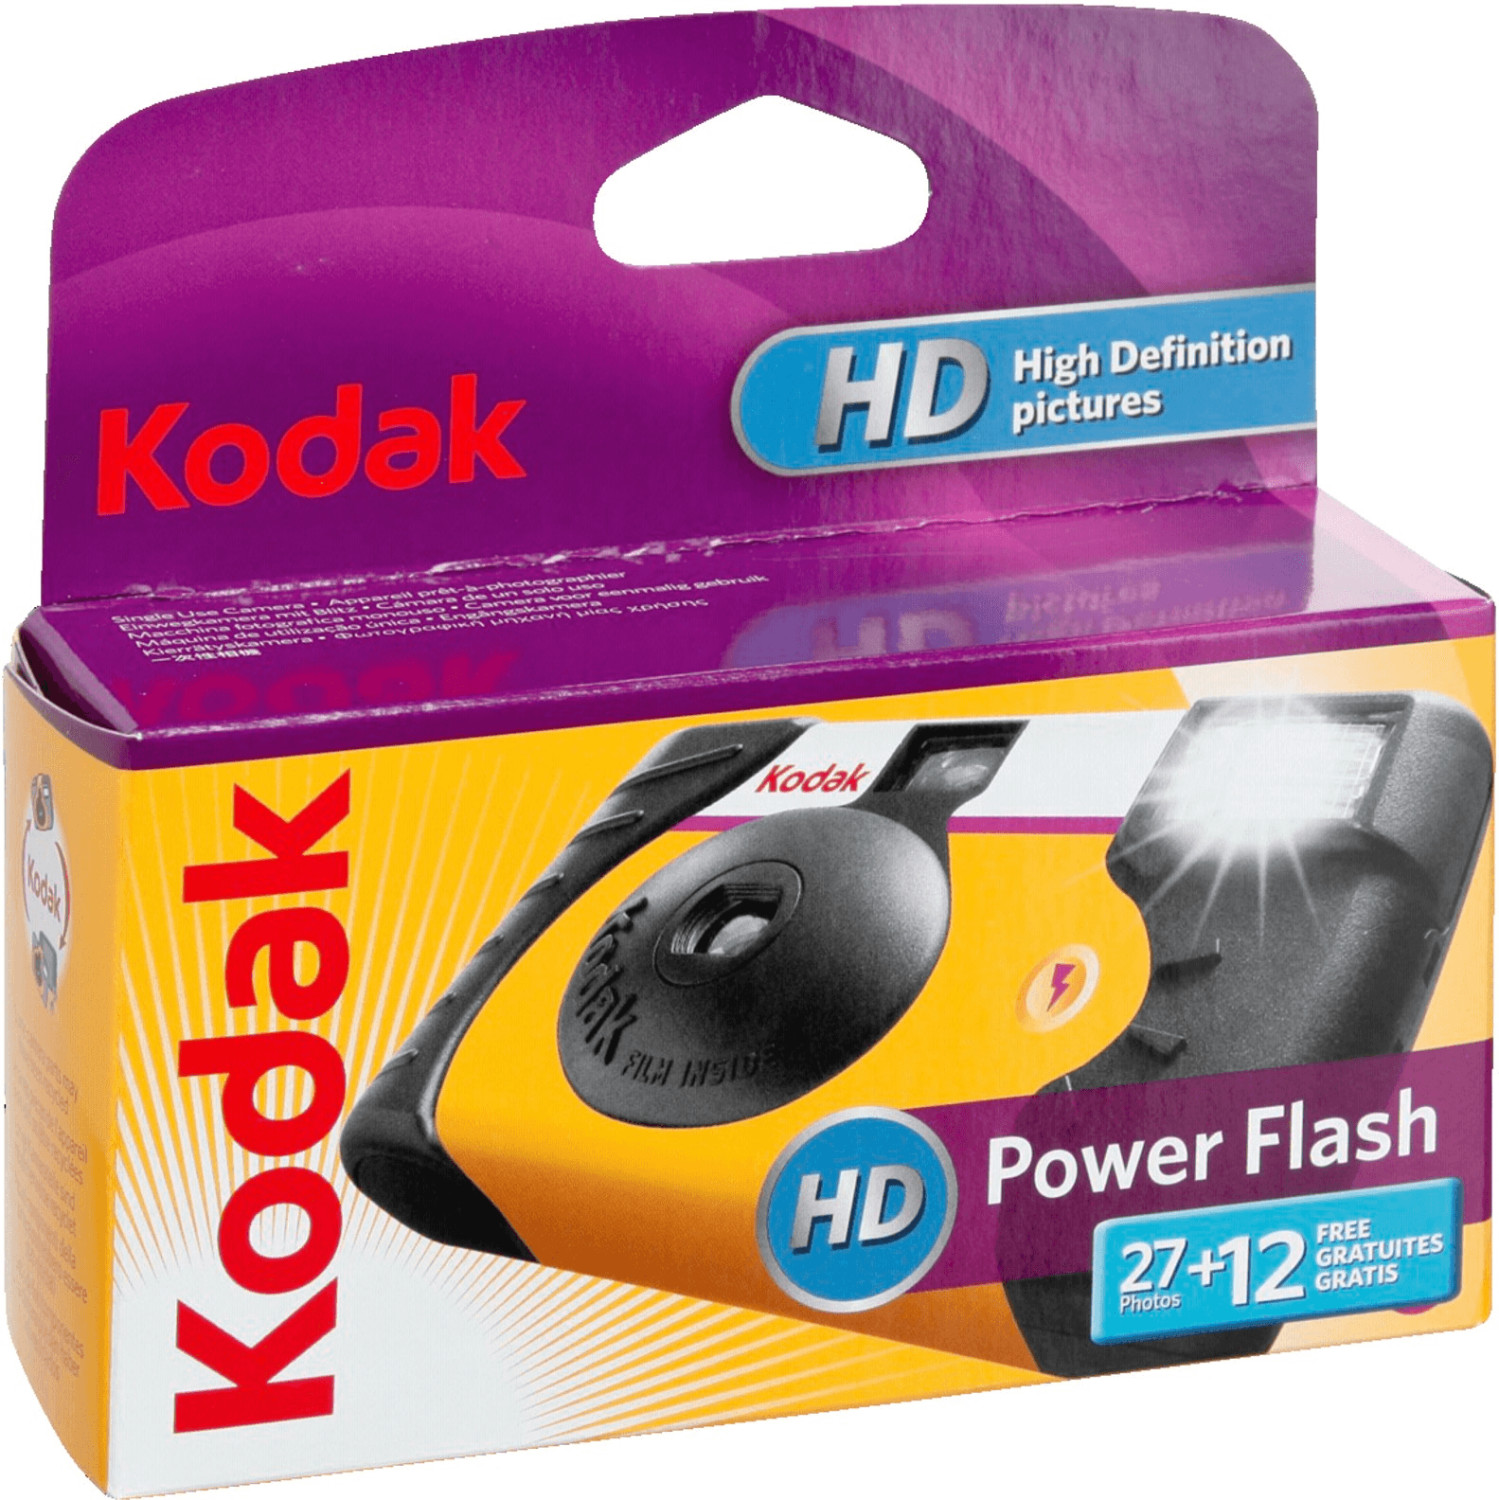 Kodak Flash